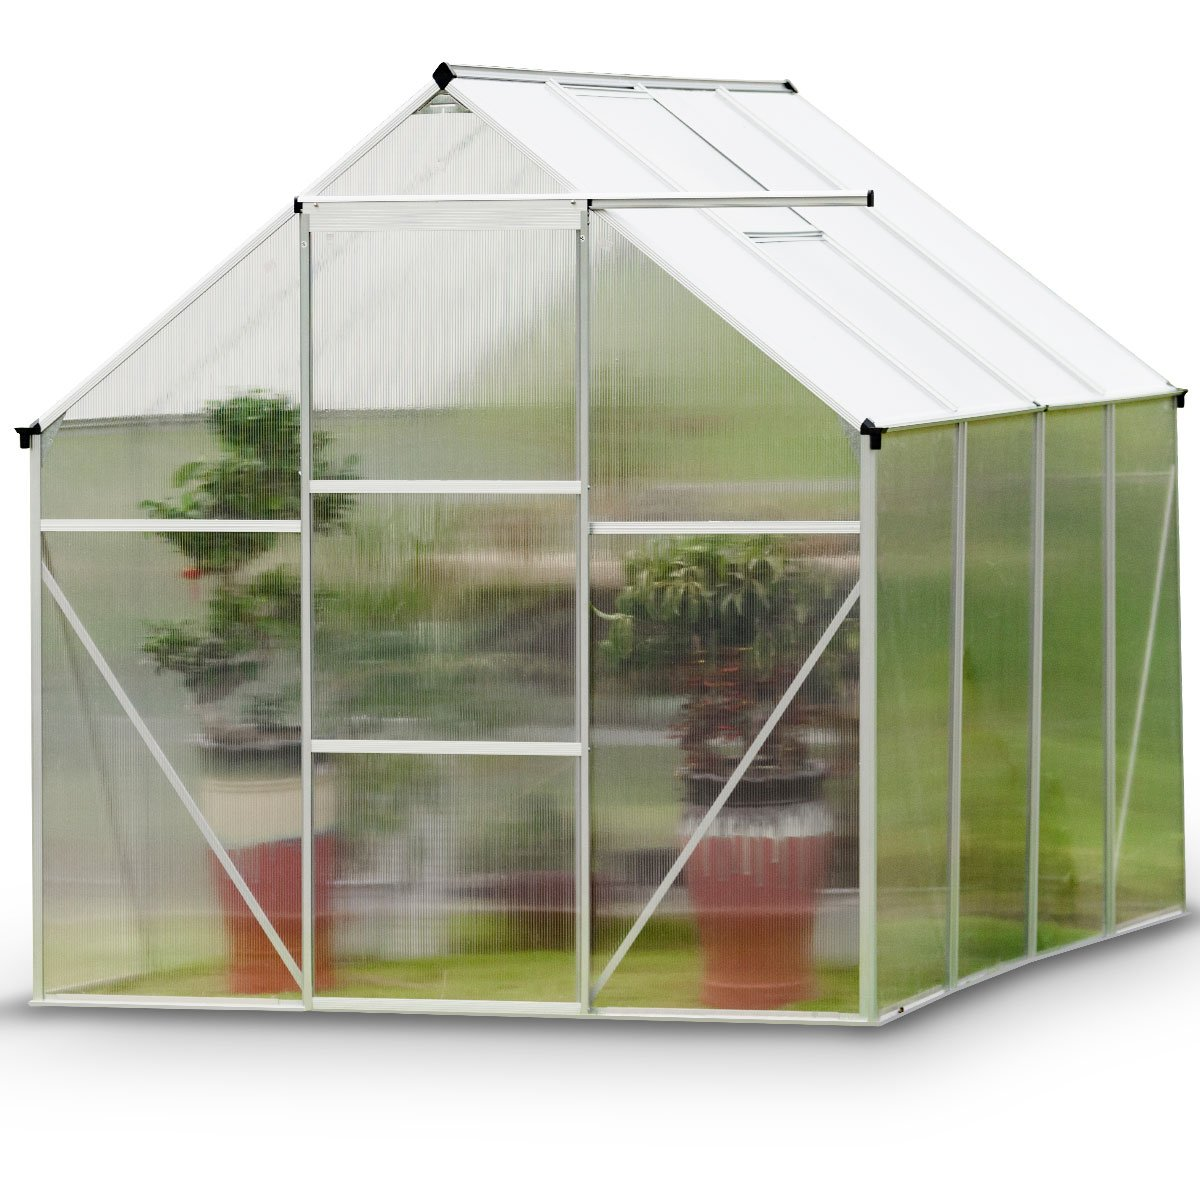 Giantex Walk-in Greenhouse Plant Growing Tent Large Green Garden Hot House with Adjustable Roof Vent, Rain Gutters Heavy Duty Polycarbonate Aluminum Frame (6.2'L x 8.2'D) by Giantex (Image #9)